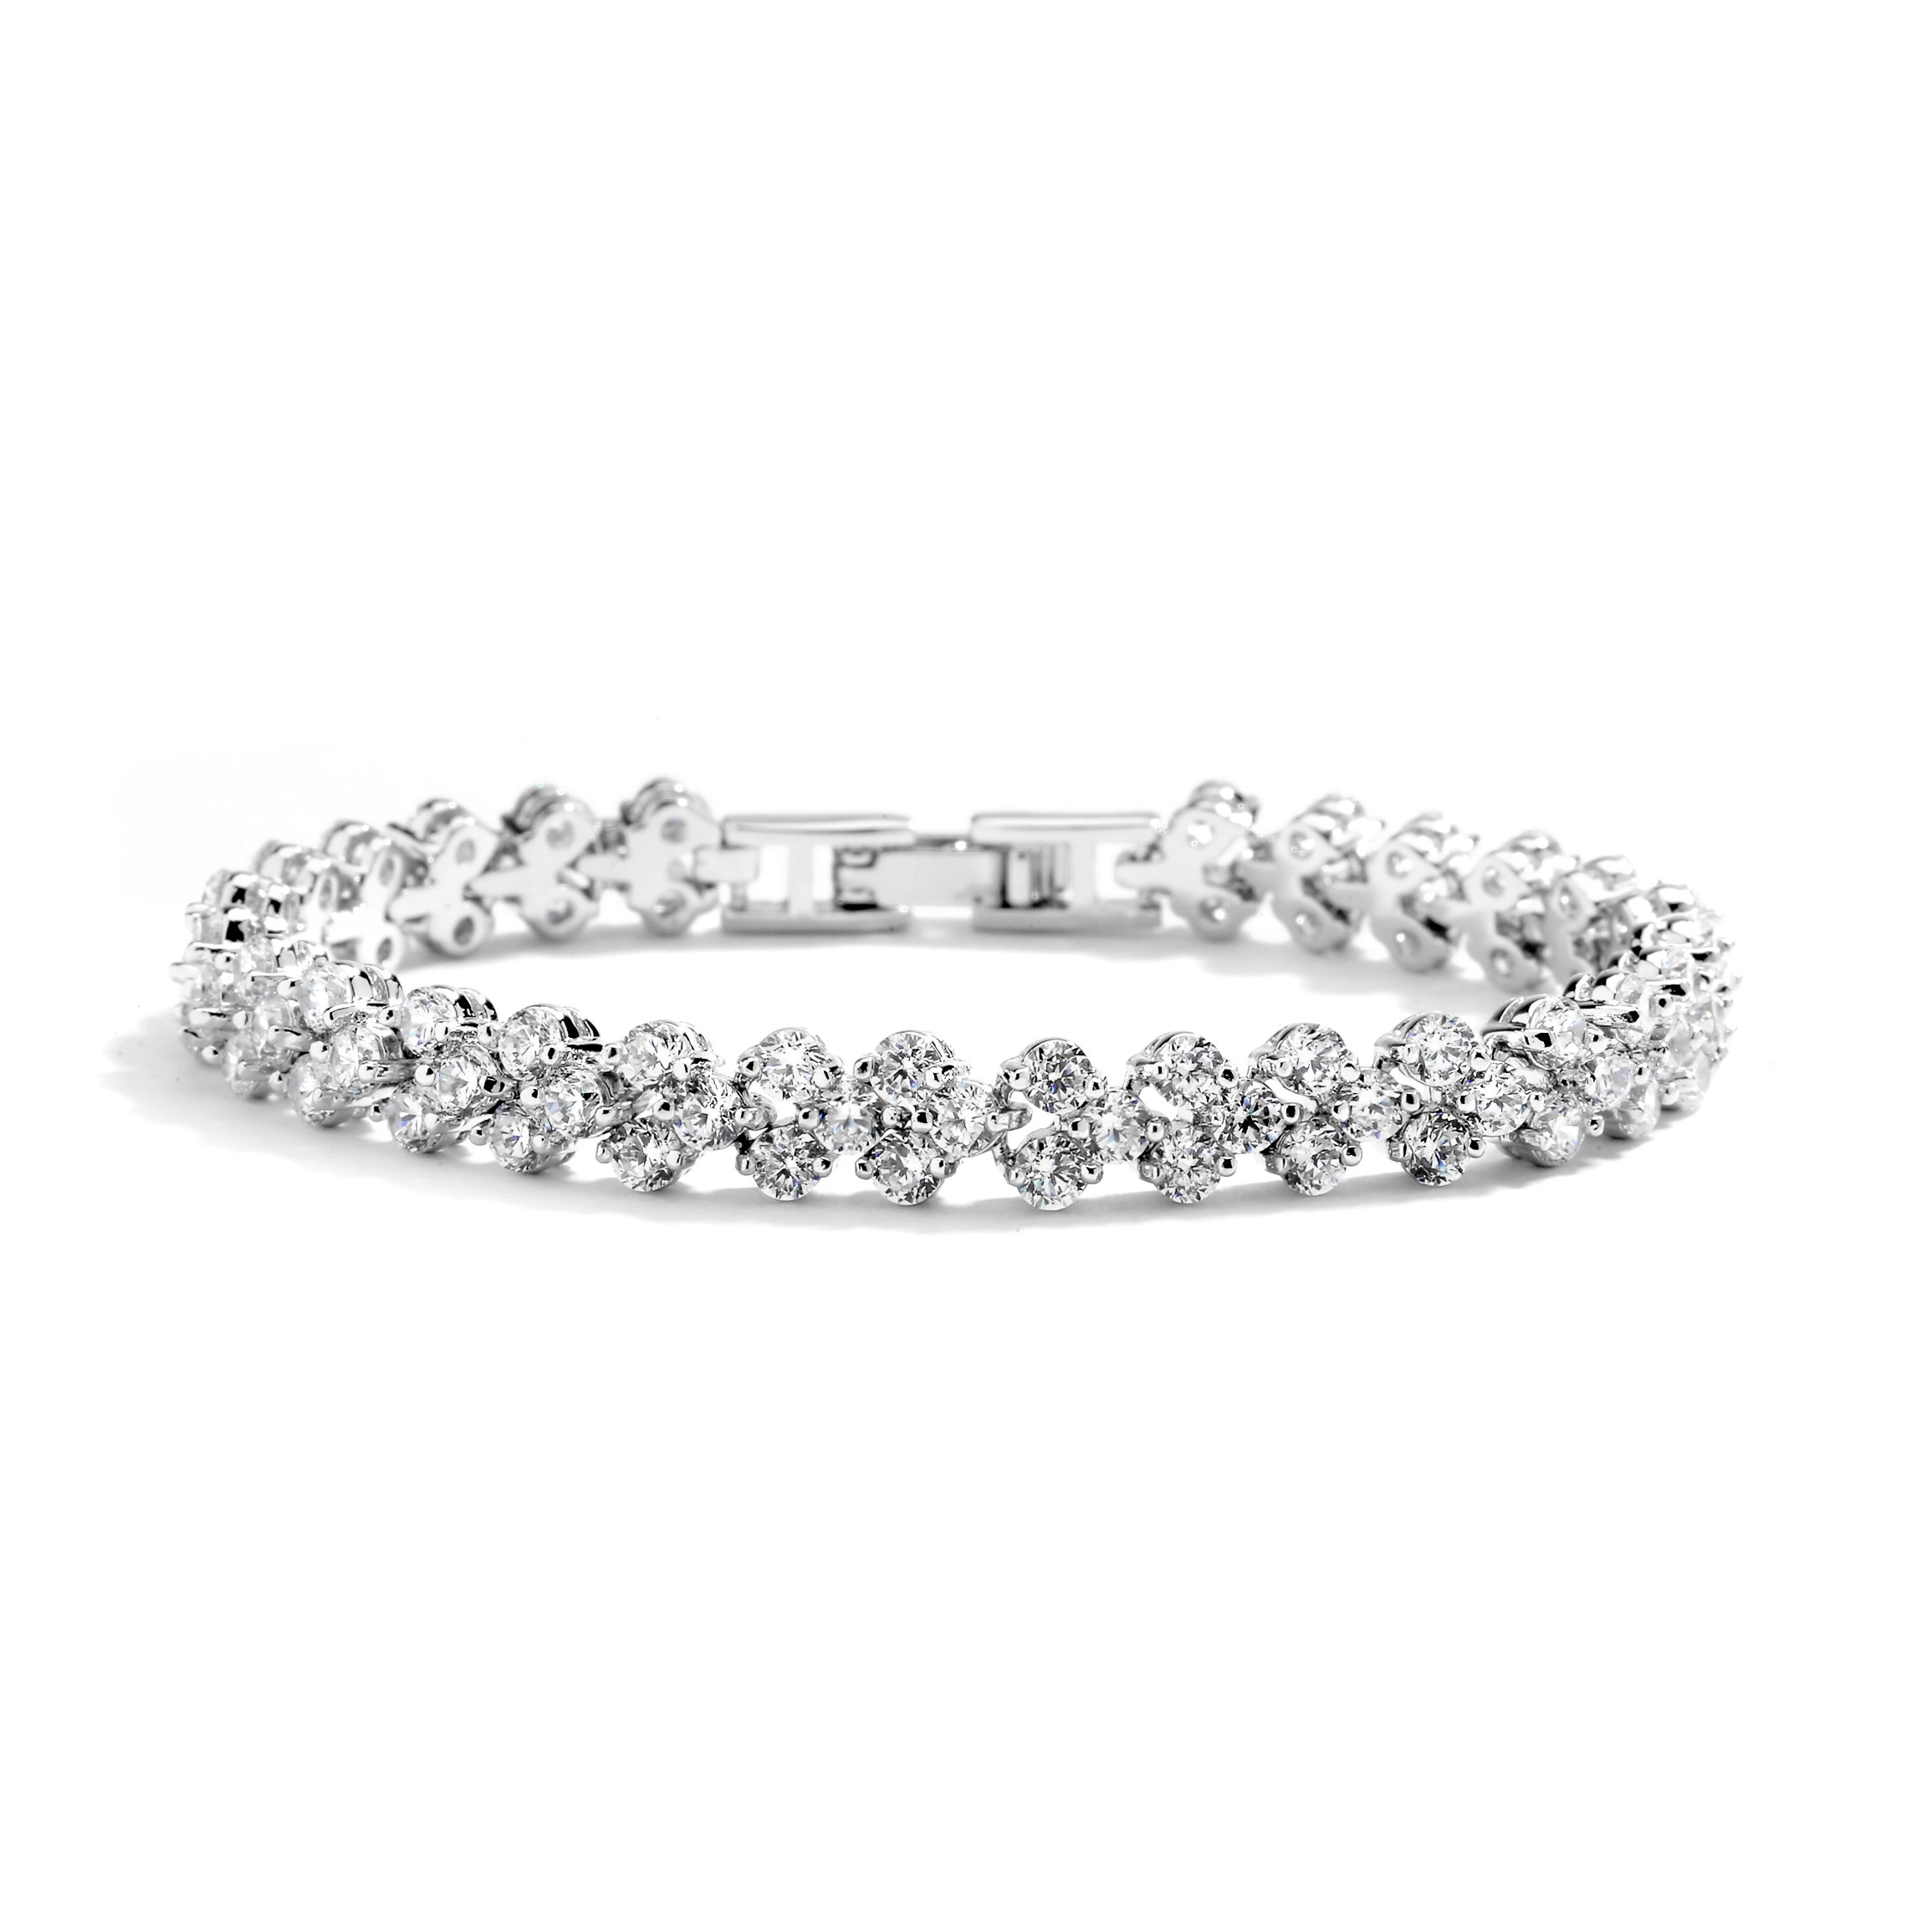 Mariell 6 3/8'' CZ Wedding Bridal or Prom Tennis Bracelet - Petite Size, Perfect for Smaller Wrist.